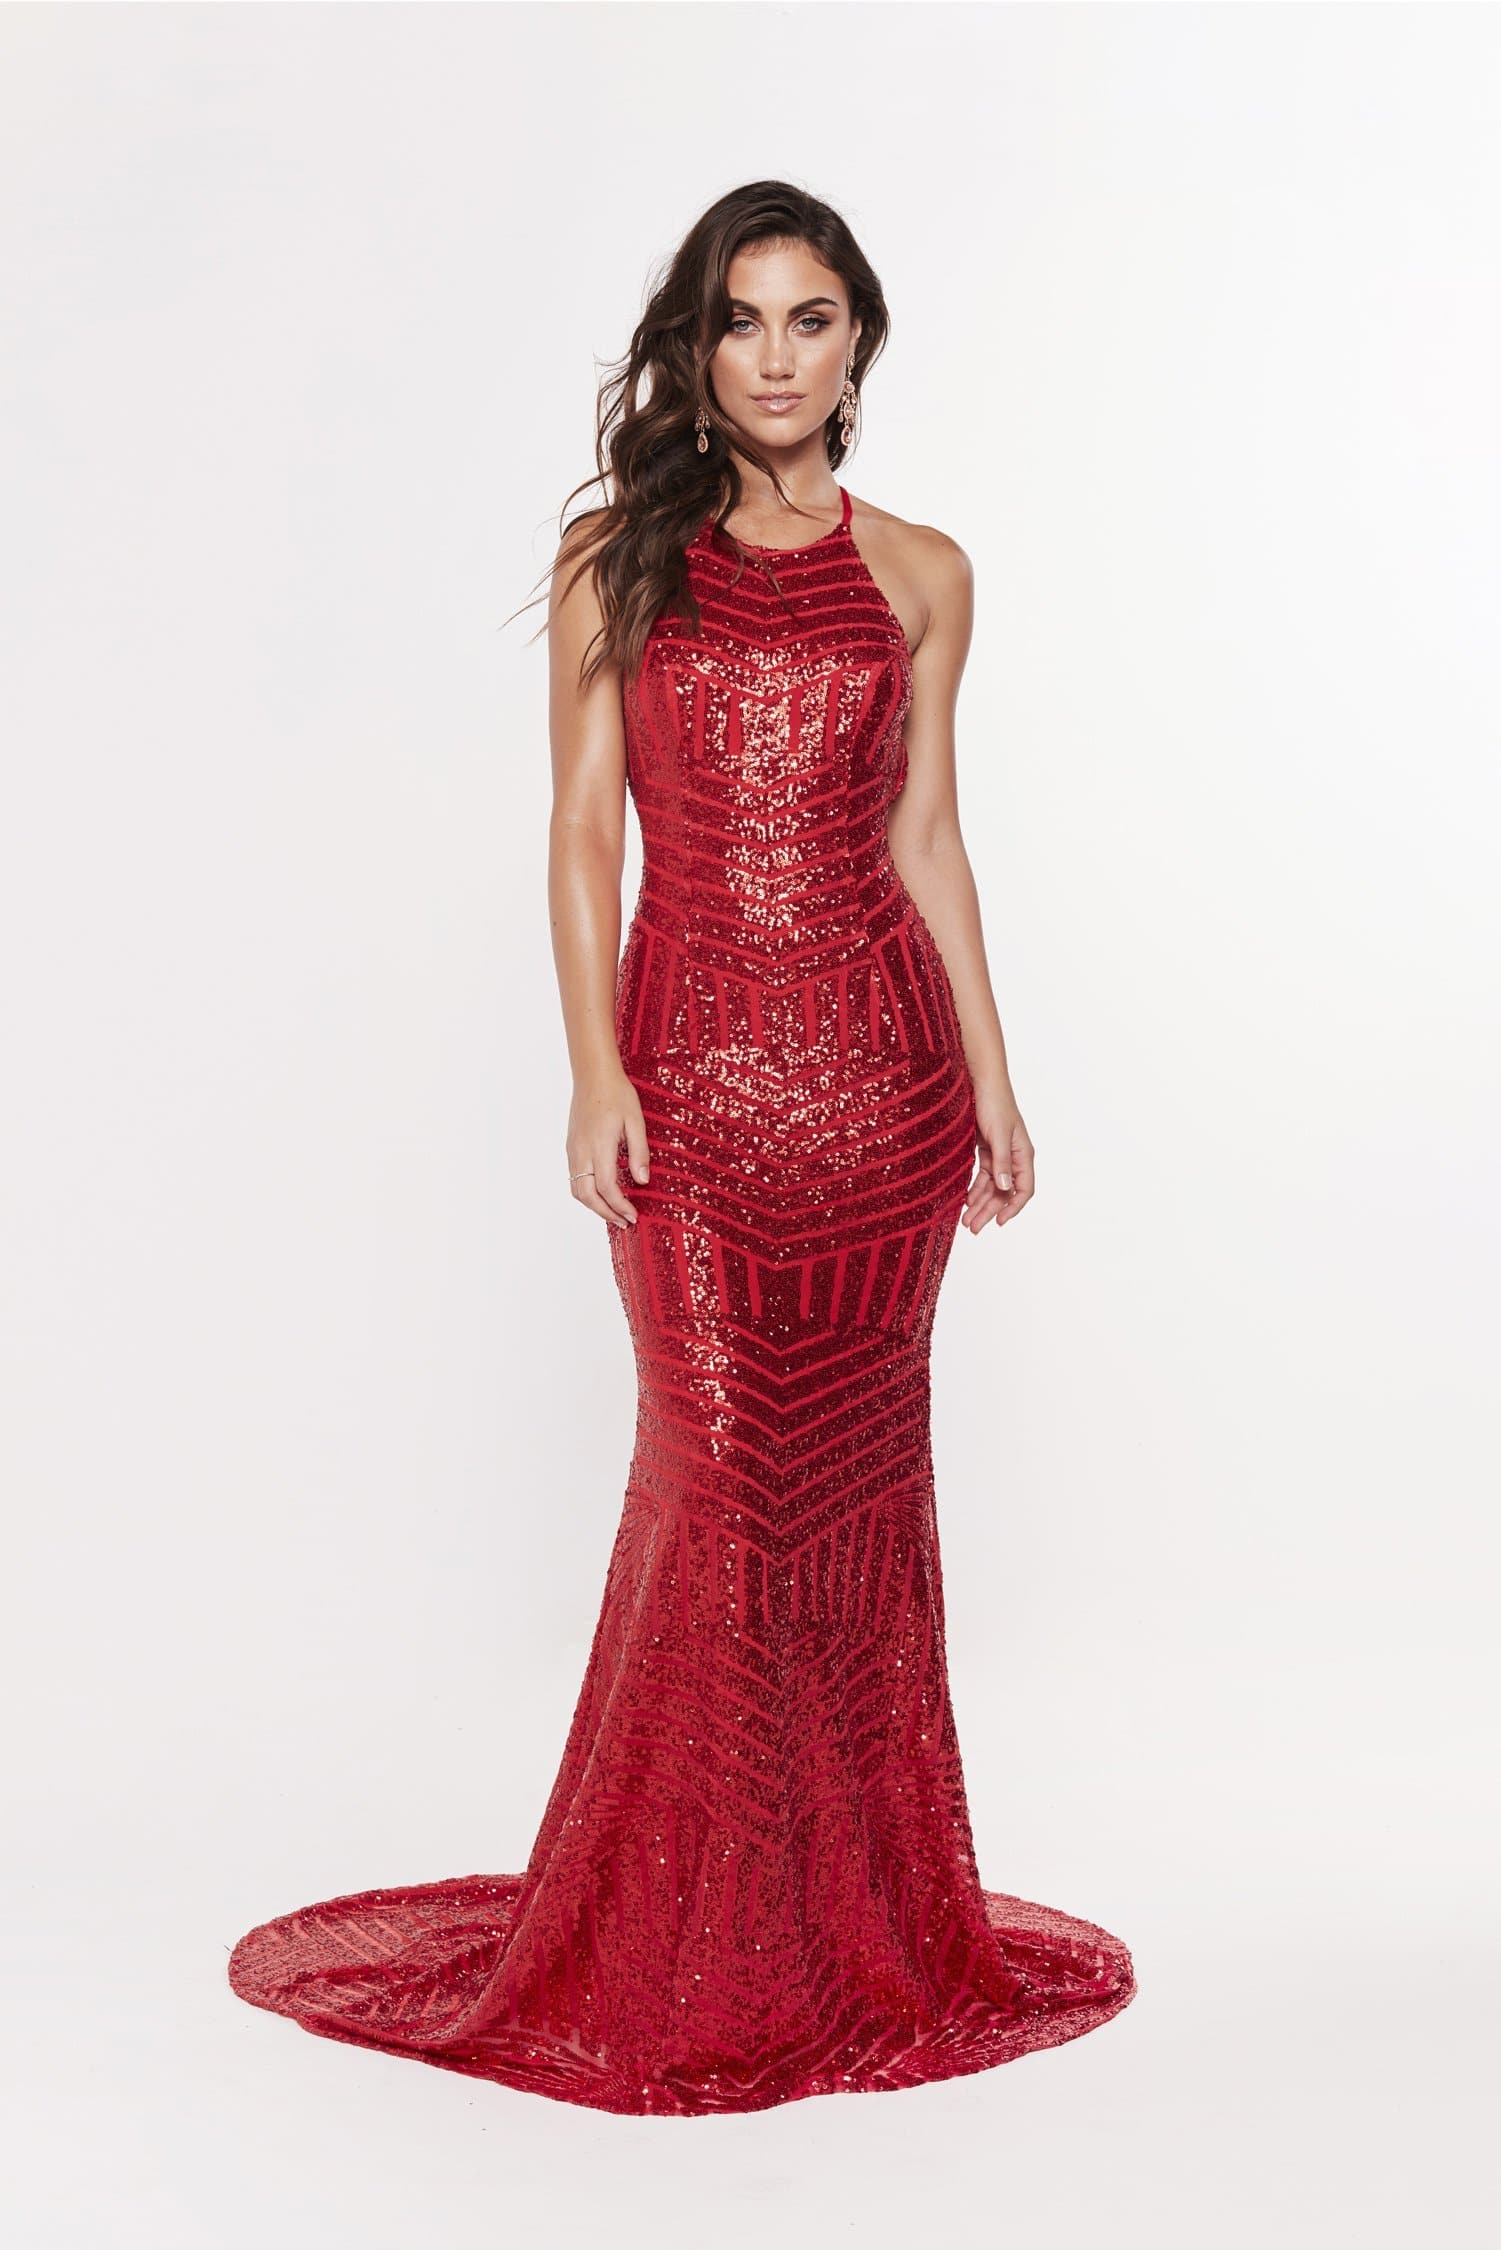 A&N Aniya Lace Up Sequin Gown - Red